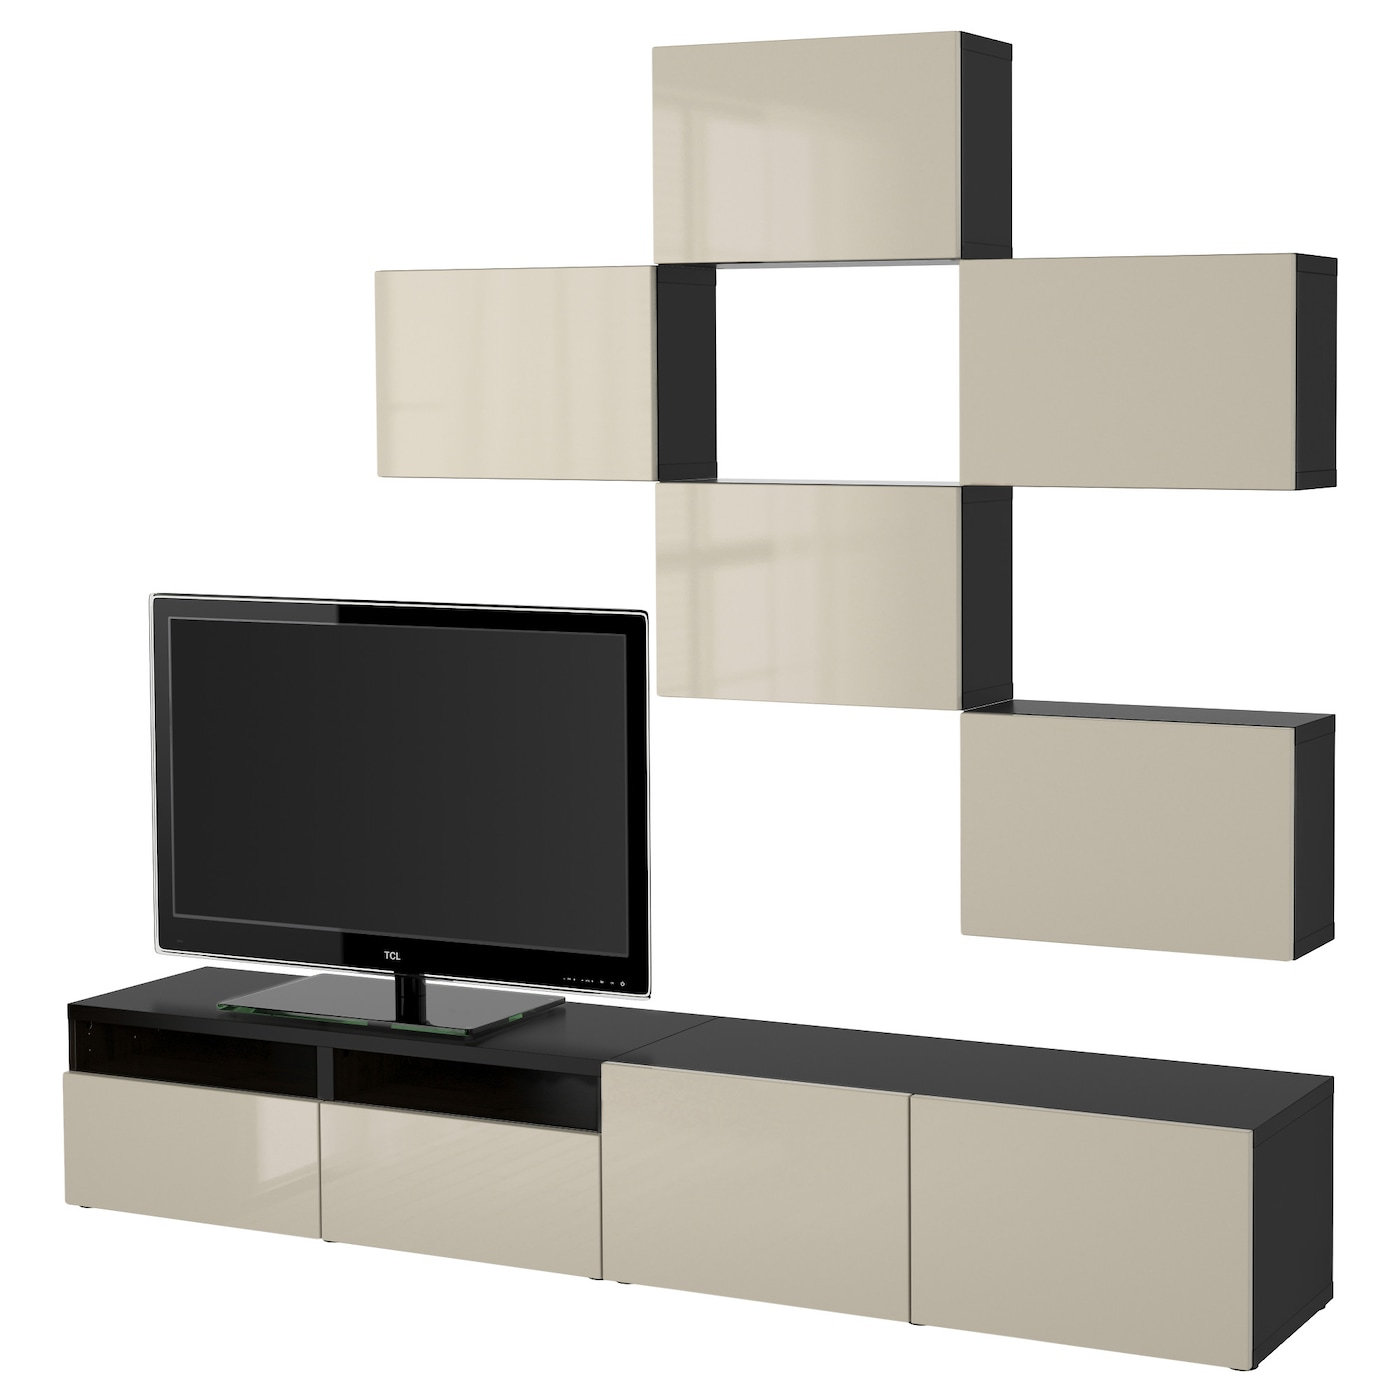 Best Combinaison Meuble Tv Brun Noir Selsviken Brillant Beige  # Meuble Tv Brillant